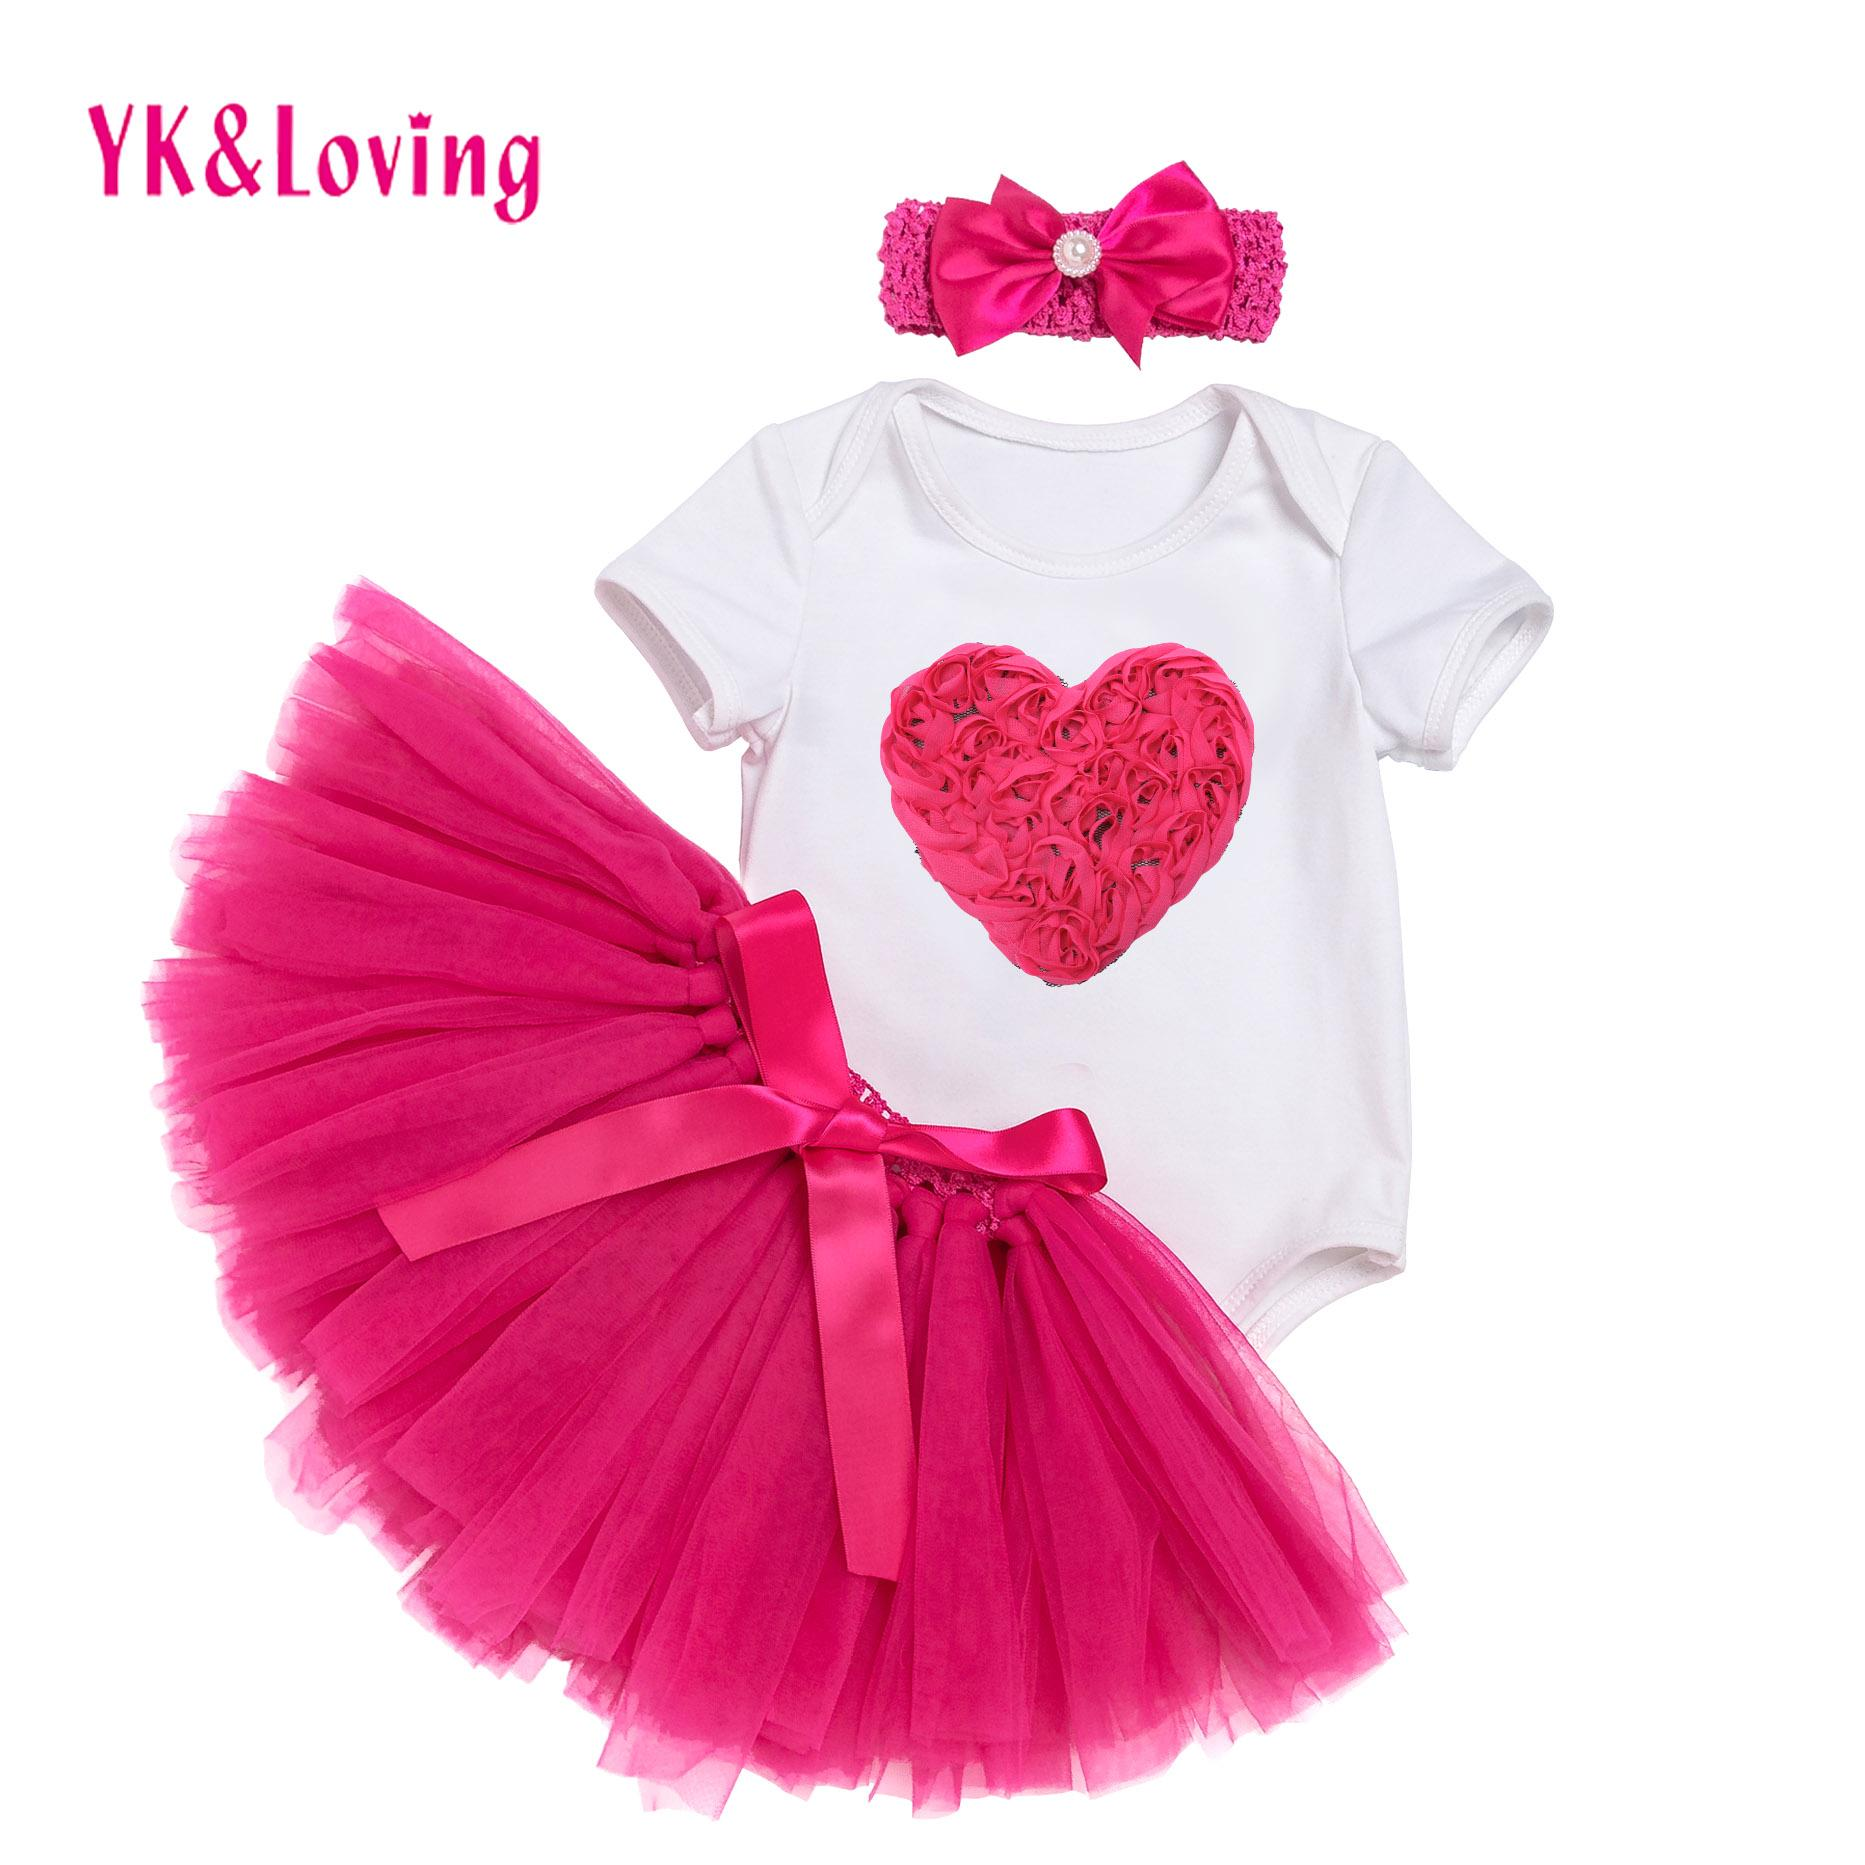 c0996d4c1956 2019 Newborn Baby Girl Romper Suit Short Sleeve Cotton Jumpsuit Girl  Bodysuit Skirt Headband Kids Infant 0 2t Clothing Sets Birthday Gifts  Outfit From ...